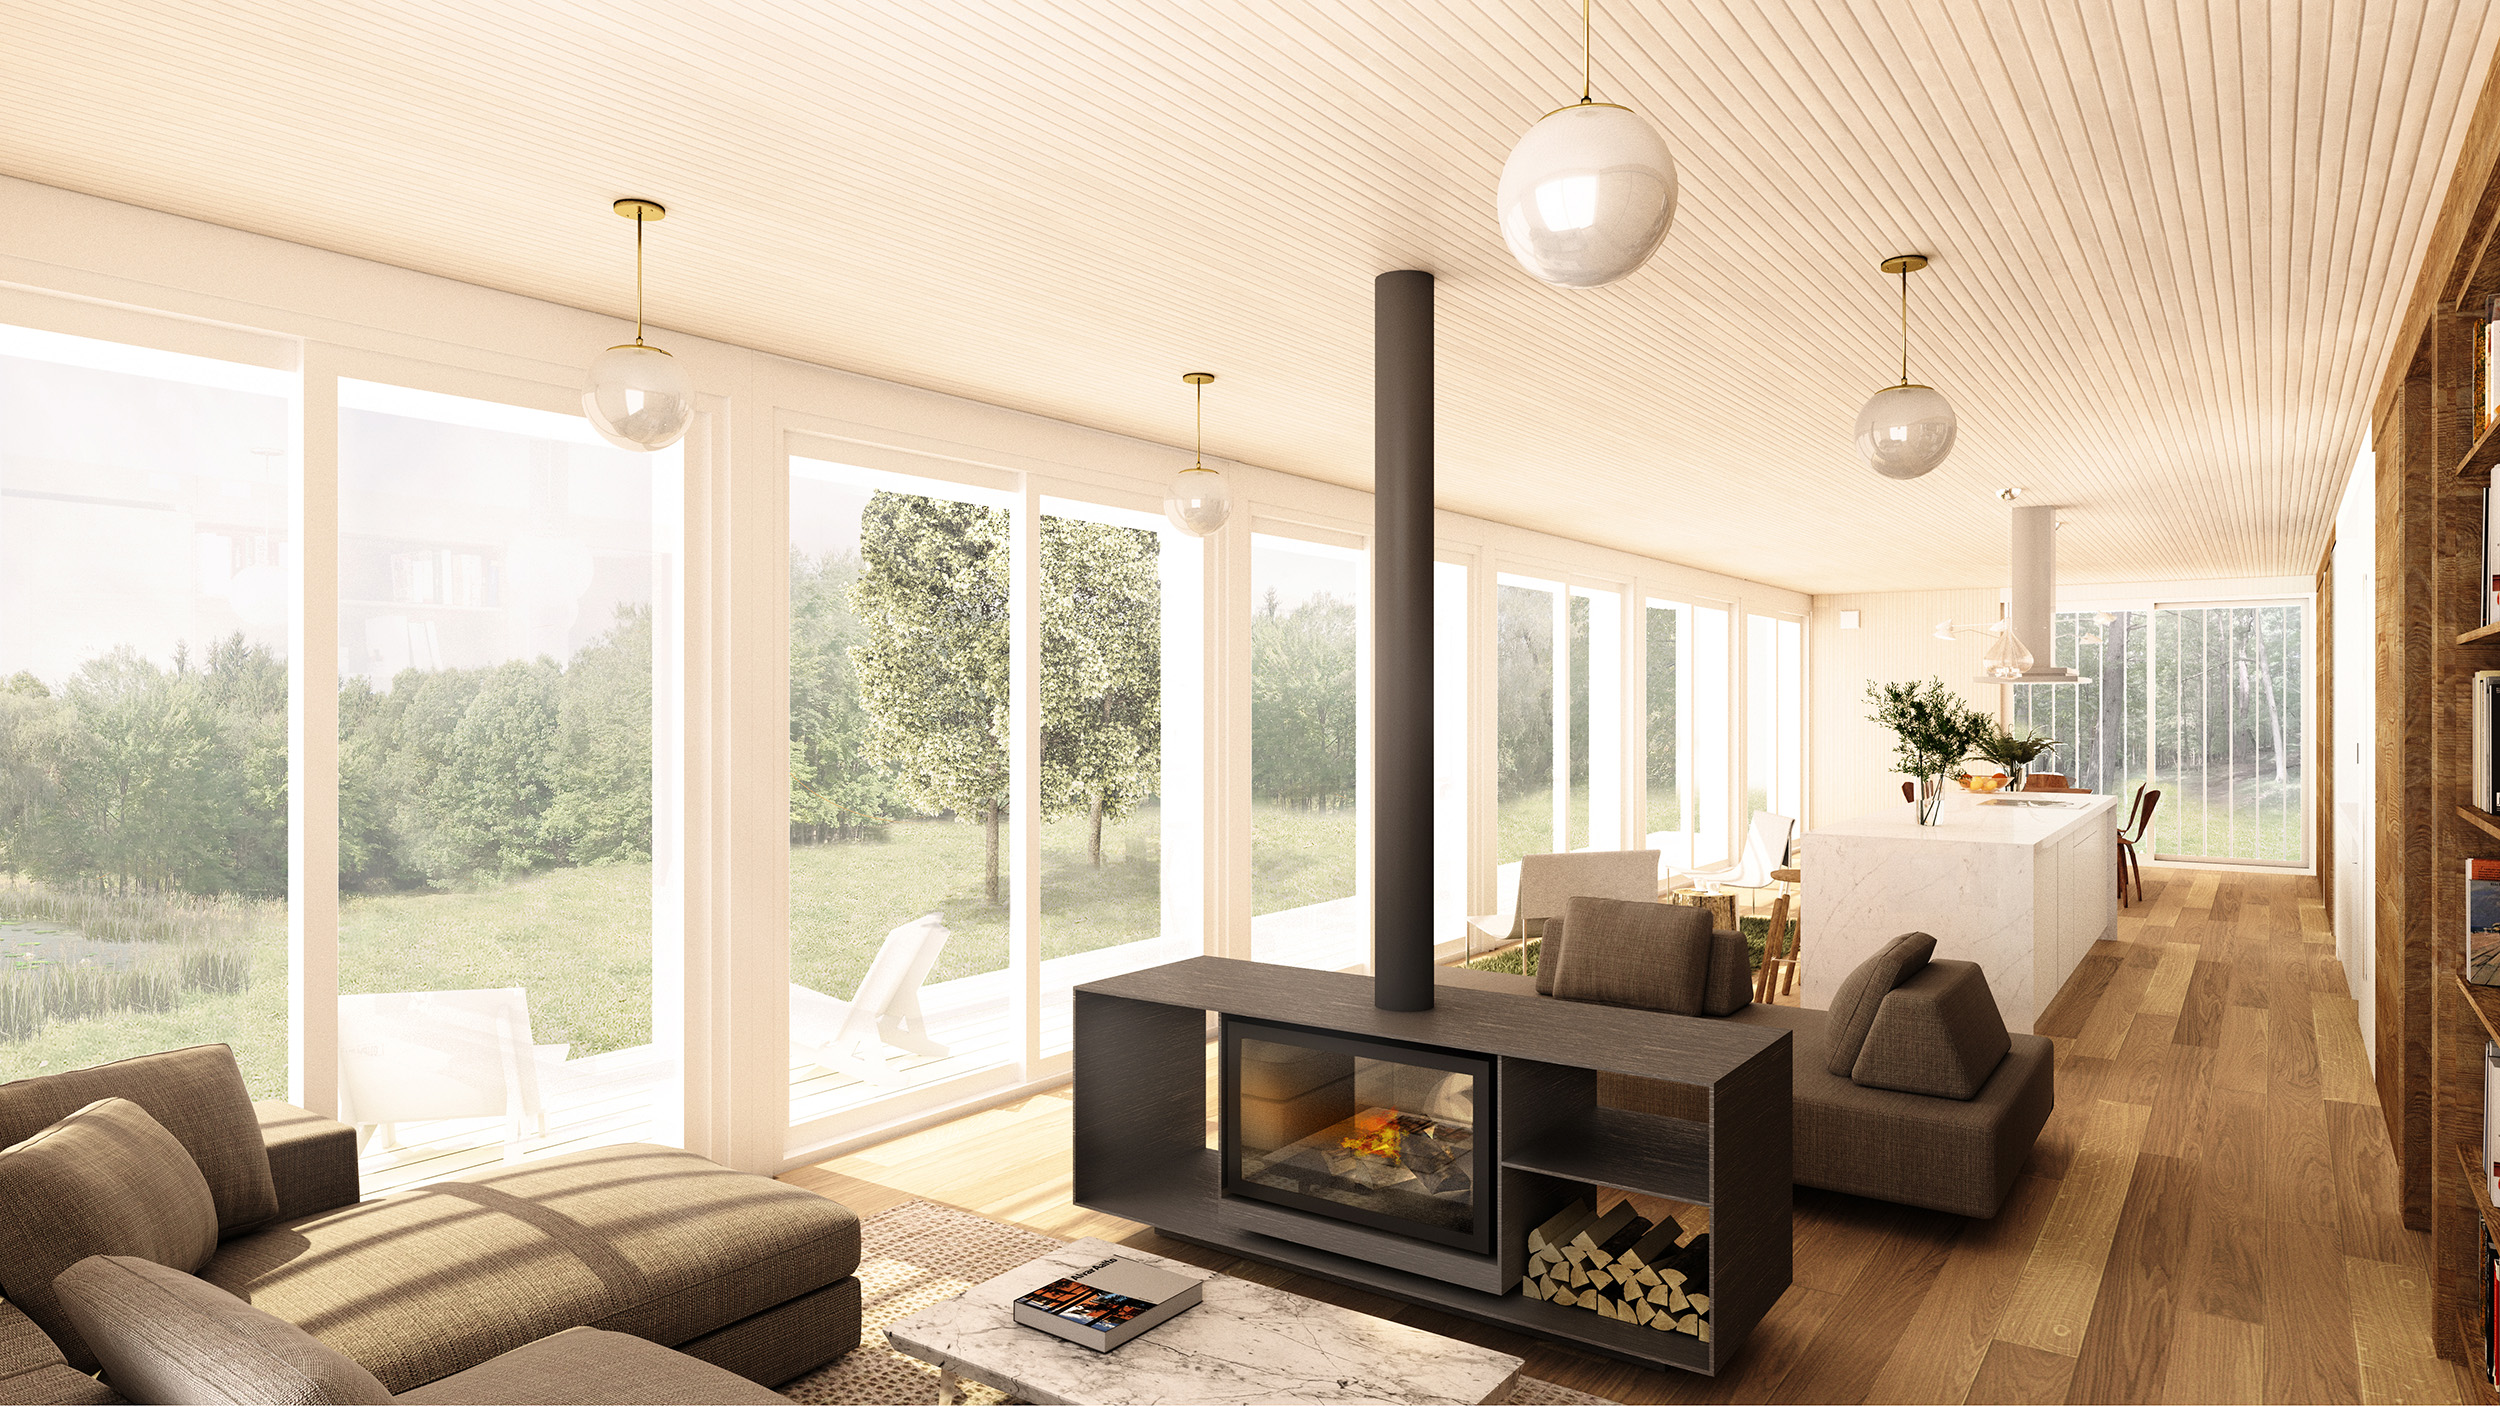 A double-fronted free-standing wood-fireplace takes center stage in the living/lounge area